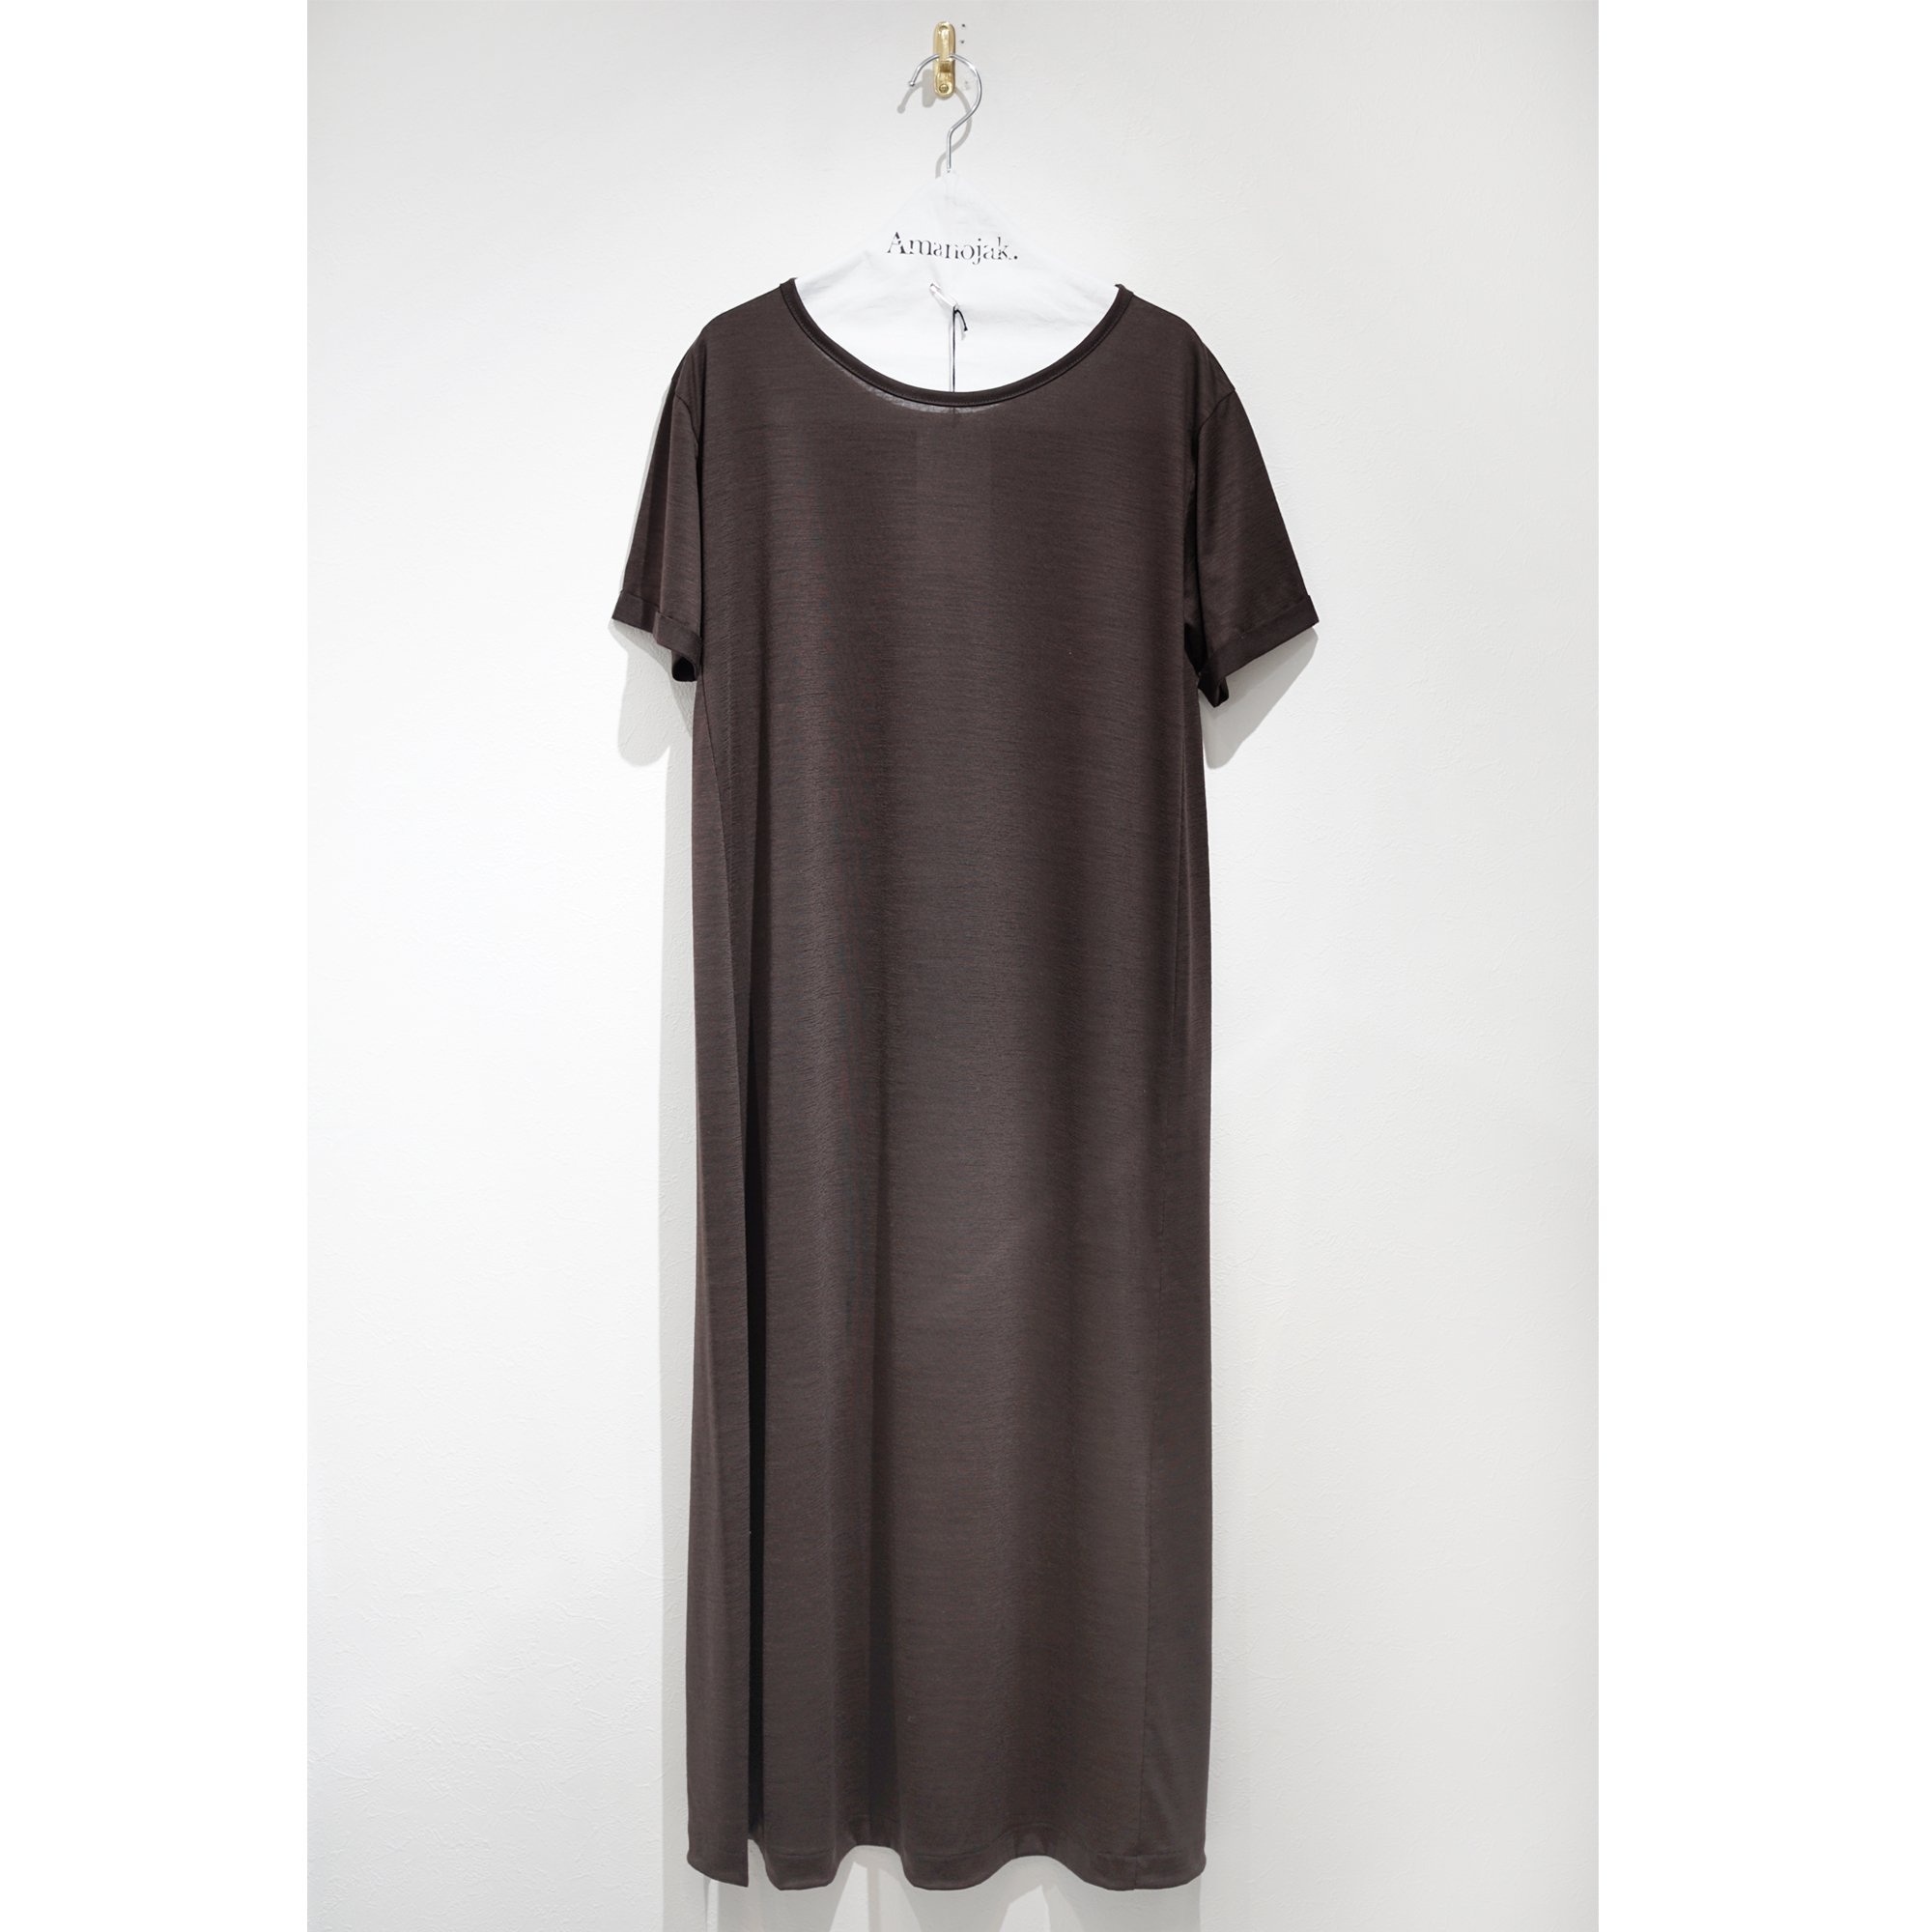 BATONER-WOOL DRESS TEE ONEPIECE BROWN